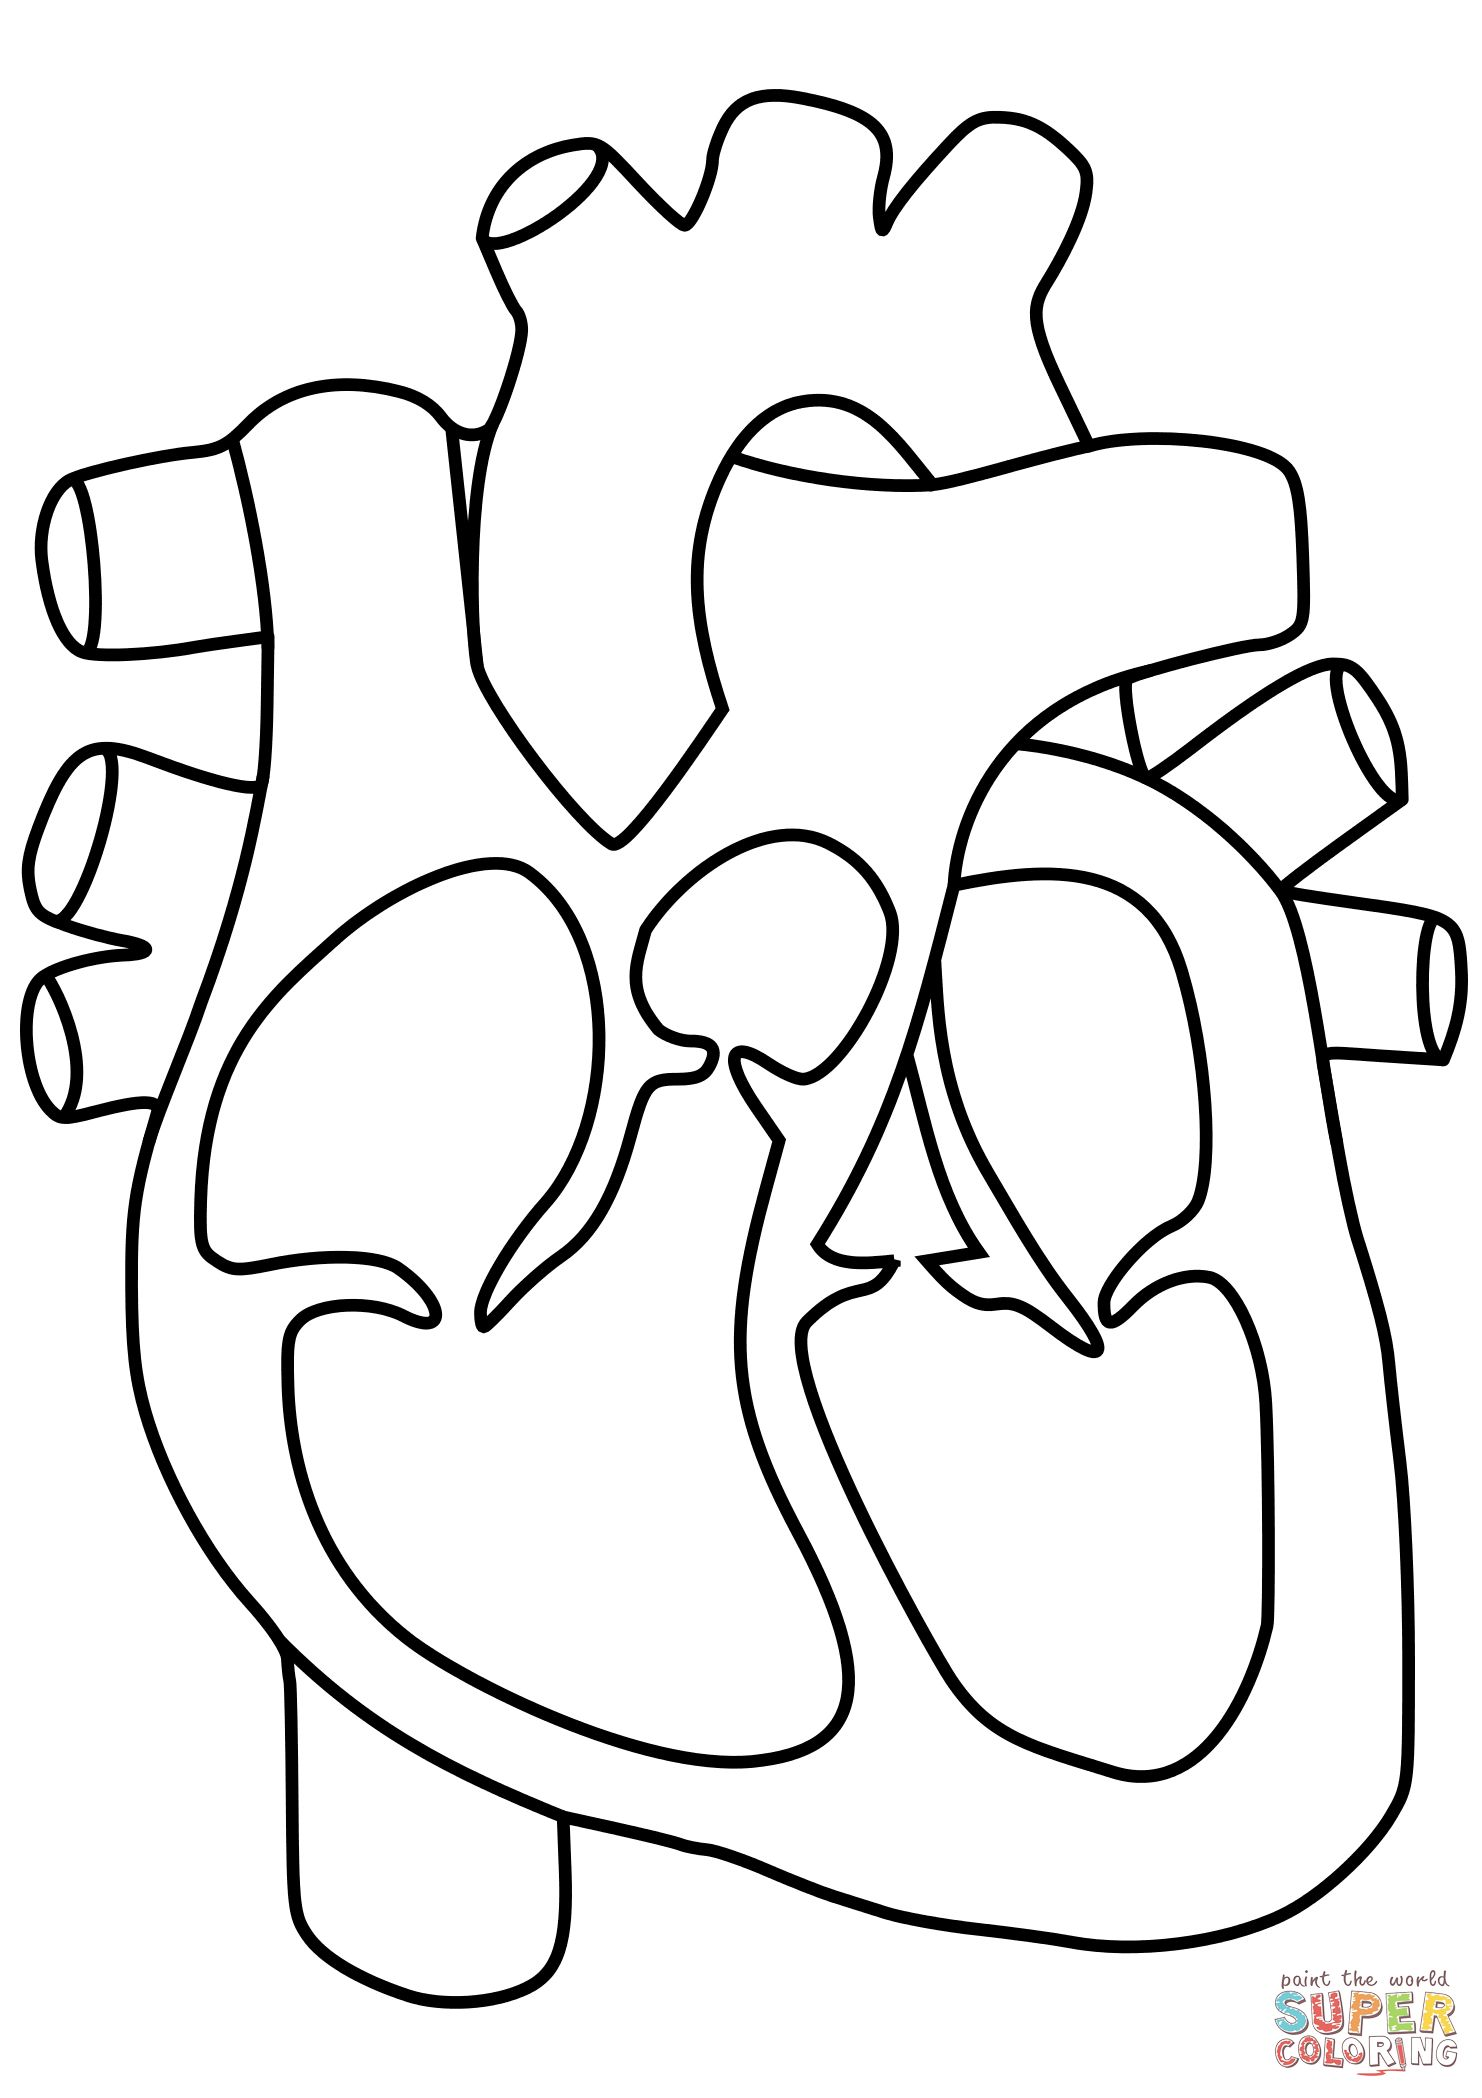 Human Heart Coloring Pages Human Heart Coloring Page Human Heart